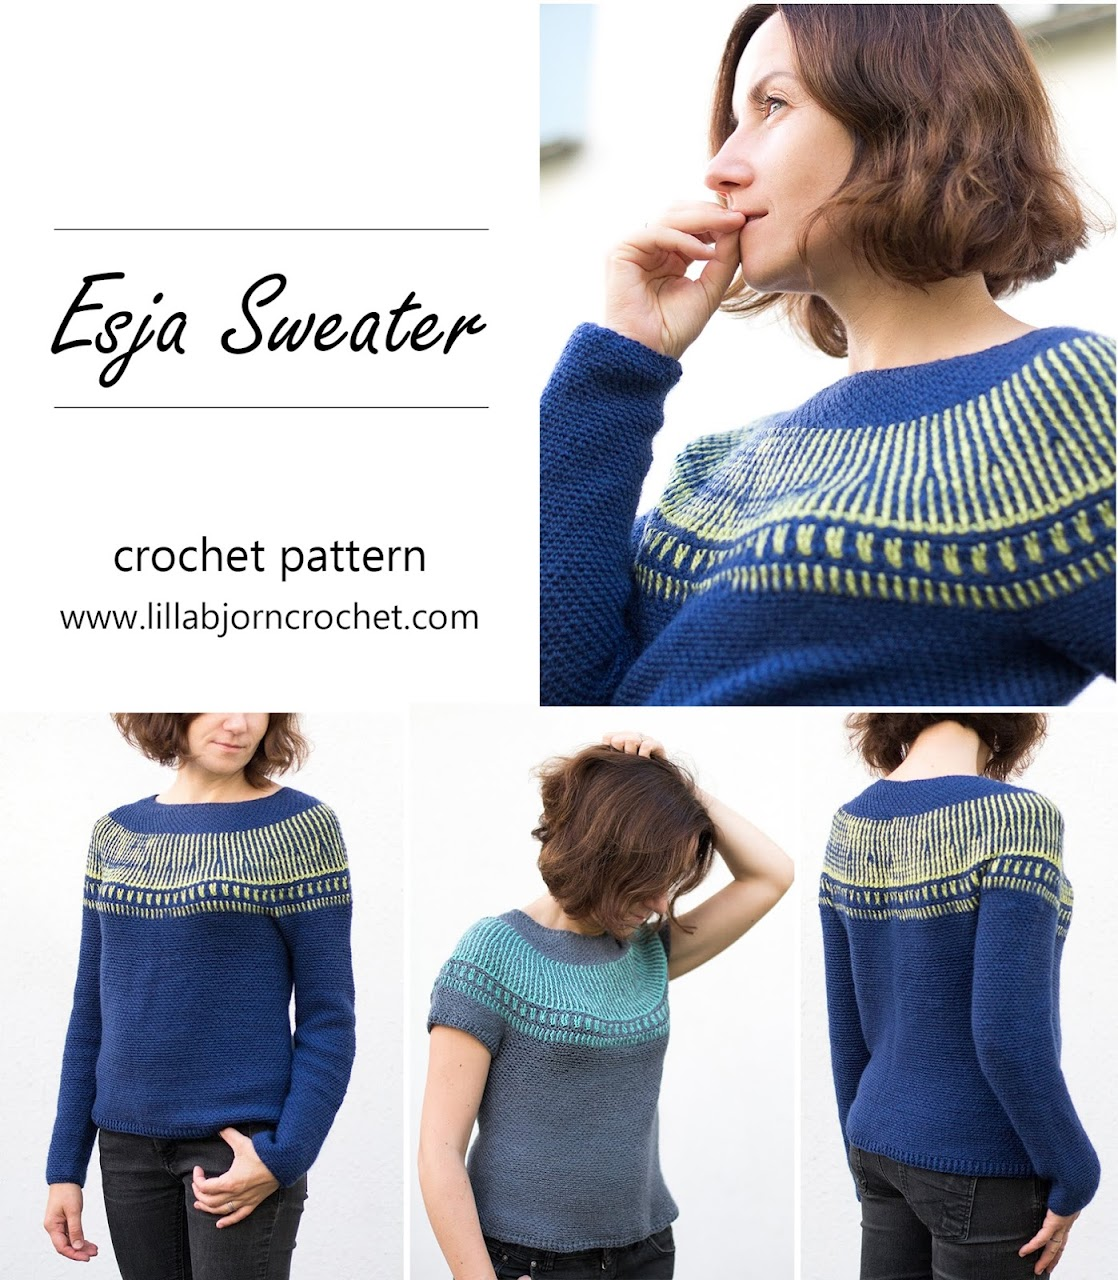 Esja Sweater crochet pattern by www.lillabjorncrochet.com